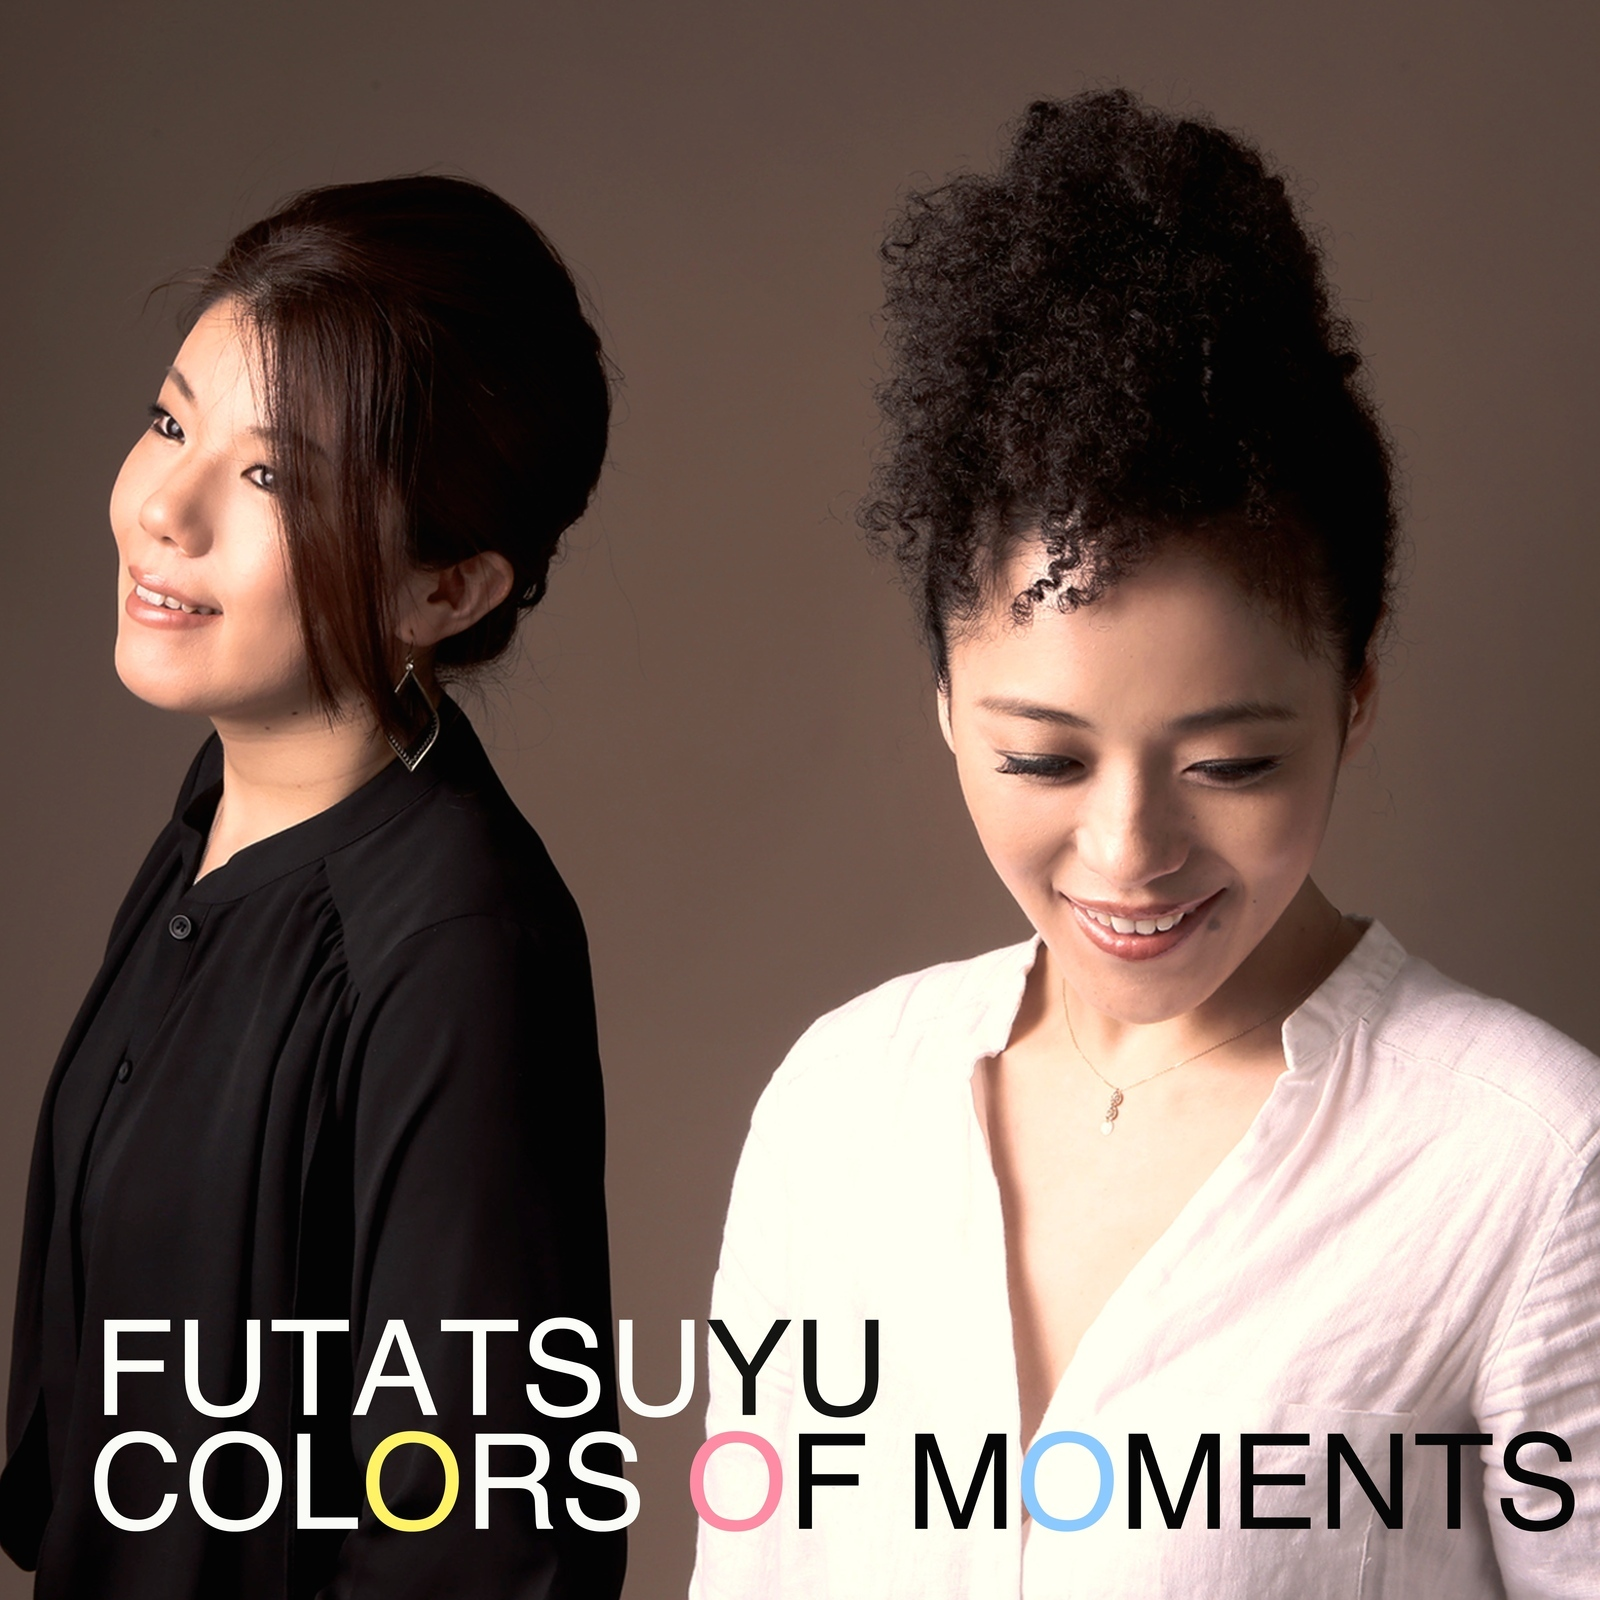 COLORS OF MOMENTES